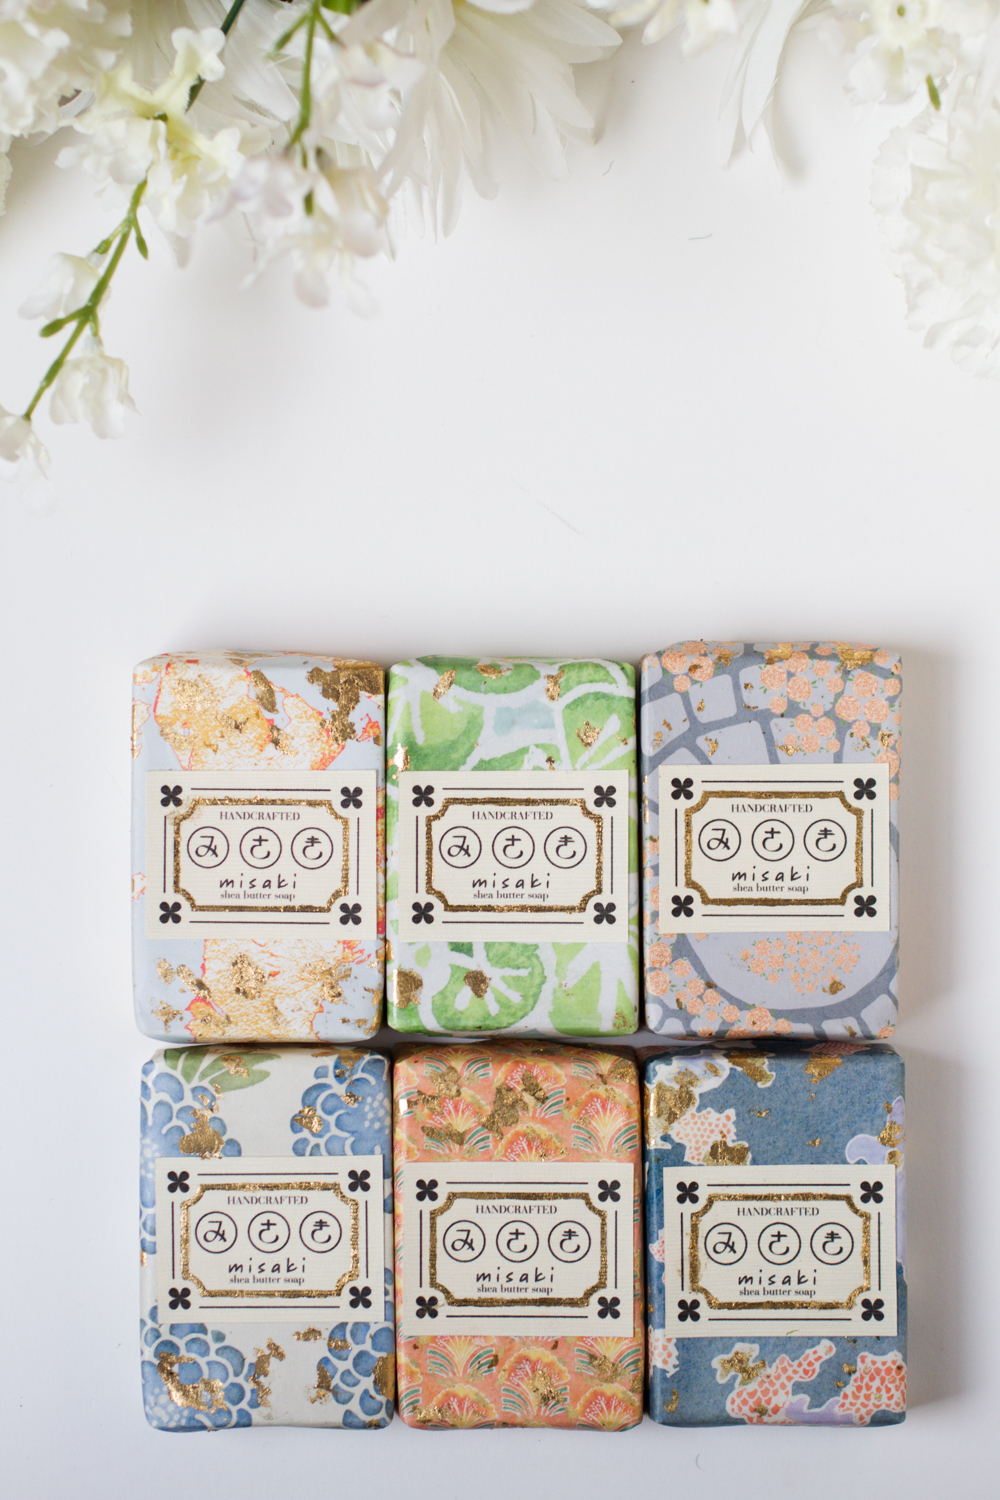 Mock up of a fictional soap brand, Misaki. Inspired by Chinese and Japanese imagery along with imagery that surrounds me daily, I wanted to transform and abstract these images into patterns that can be used for packaging. Soaps are handcrafted shea butter soaps infused with grapefruit and sandalwood essential oils with poppy seeds for exfoliation.  Photography by Christian Najjar